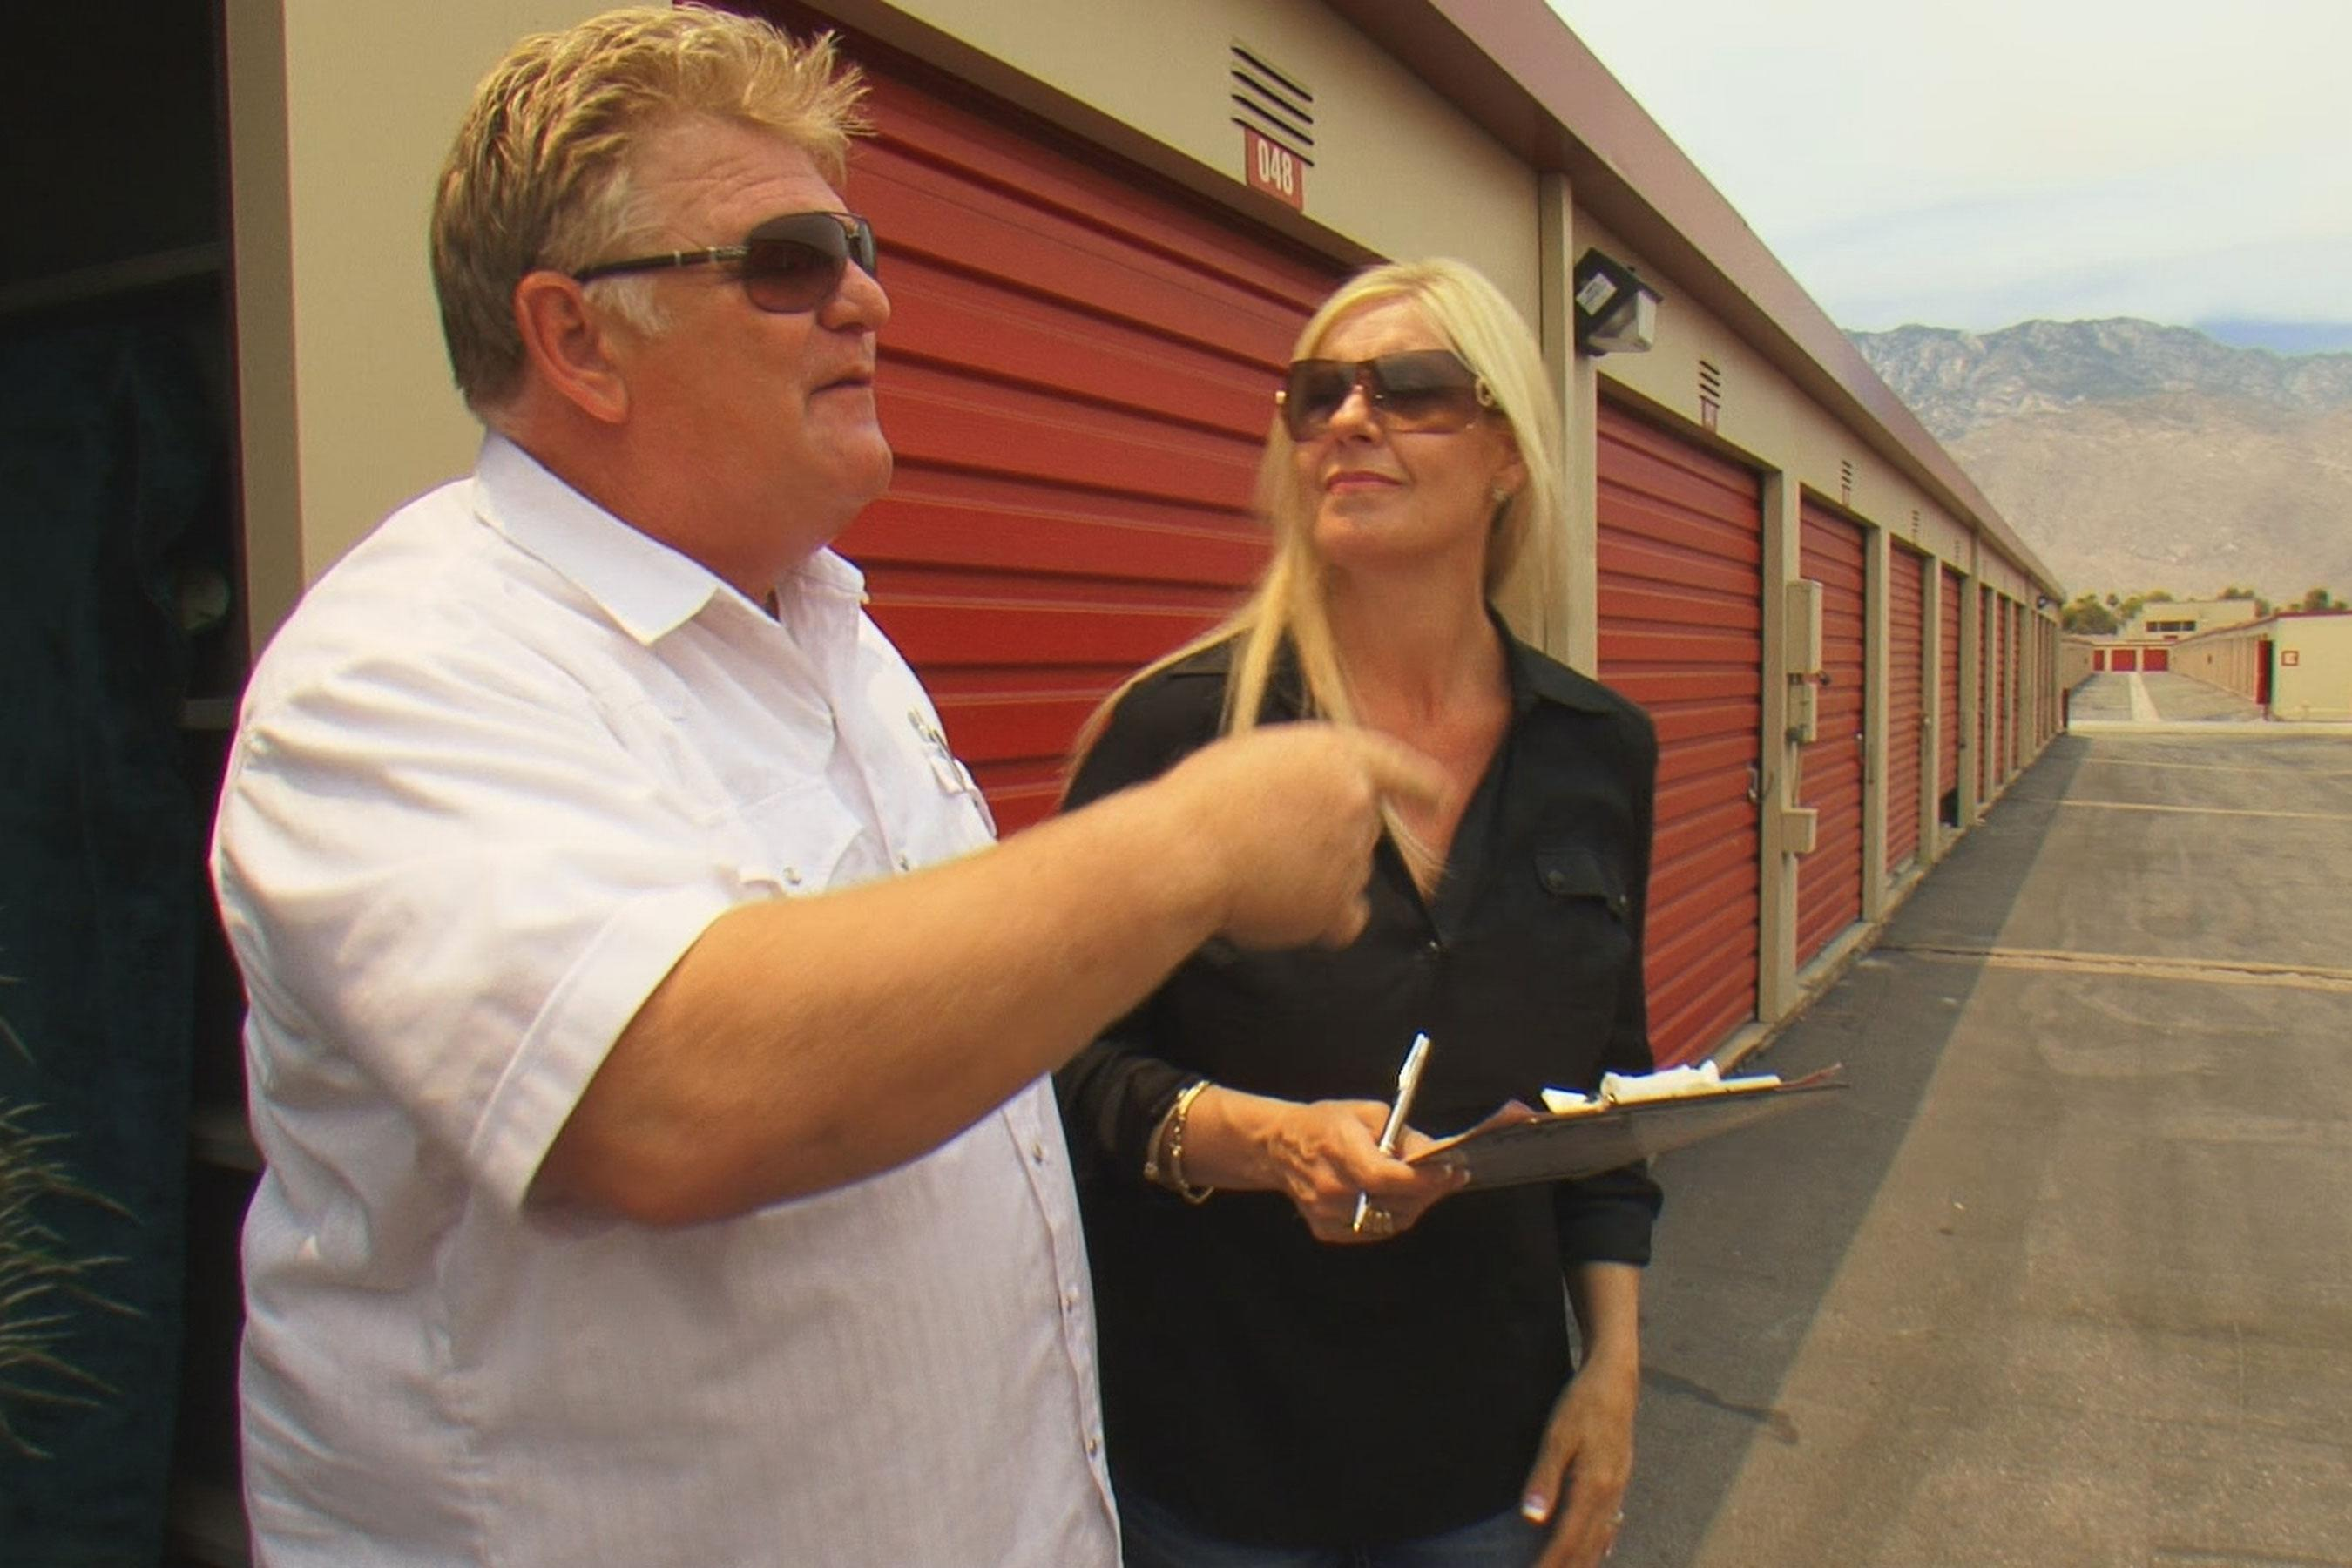 Man Finds $7.5 Million in Storage Unit He Bought for Just $500 From Storage Wars Star Dan Dotson